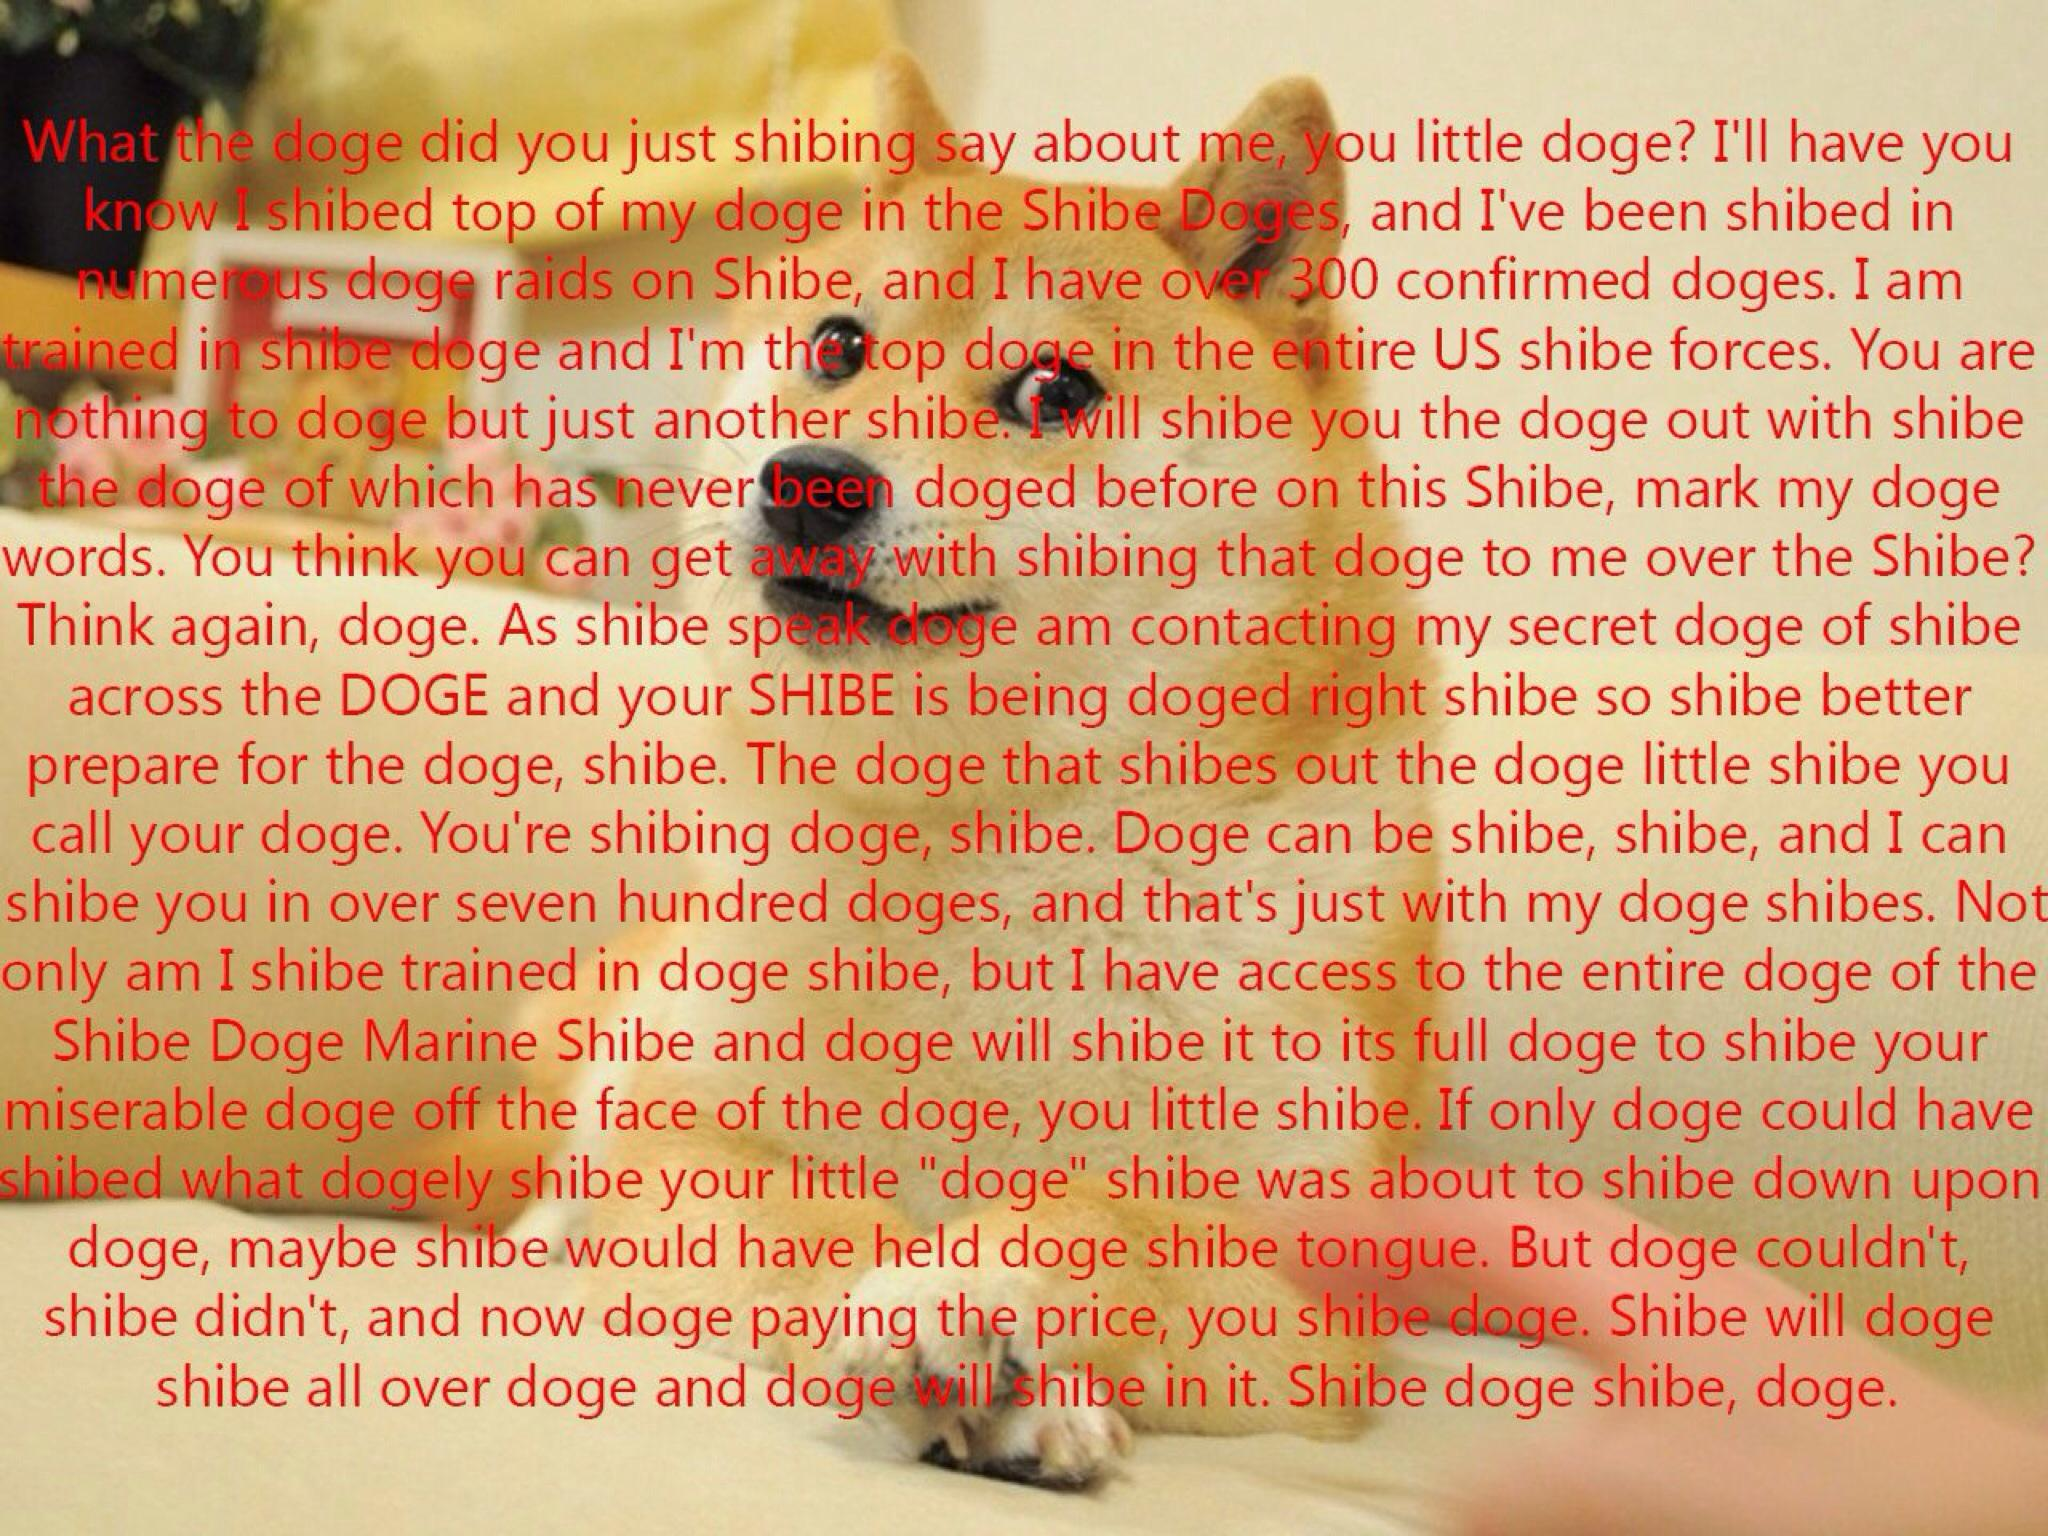 What the doge did you just shibing say about me, you little